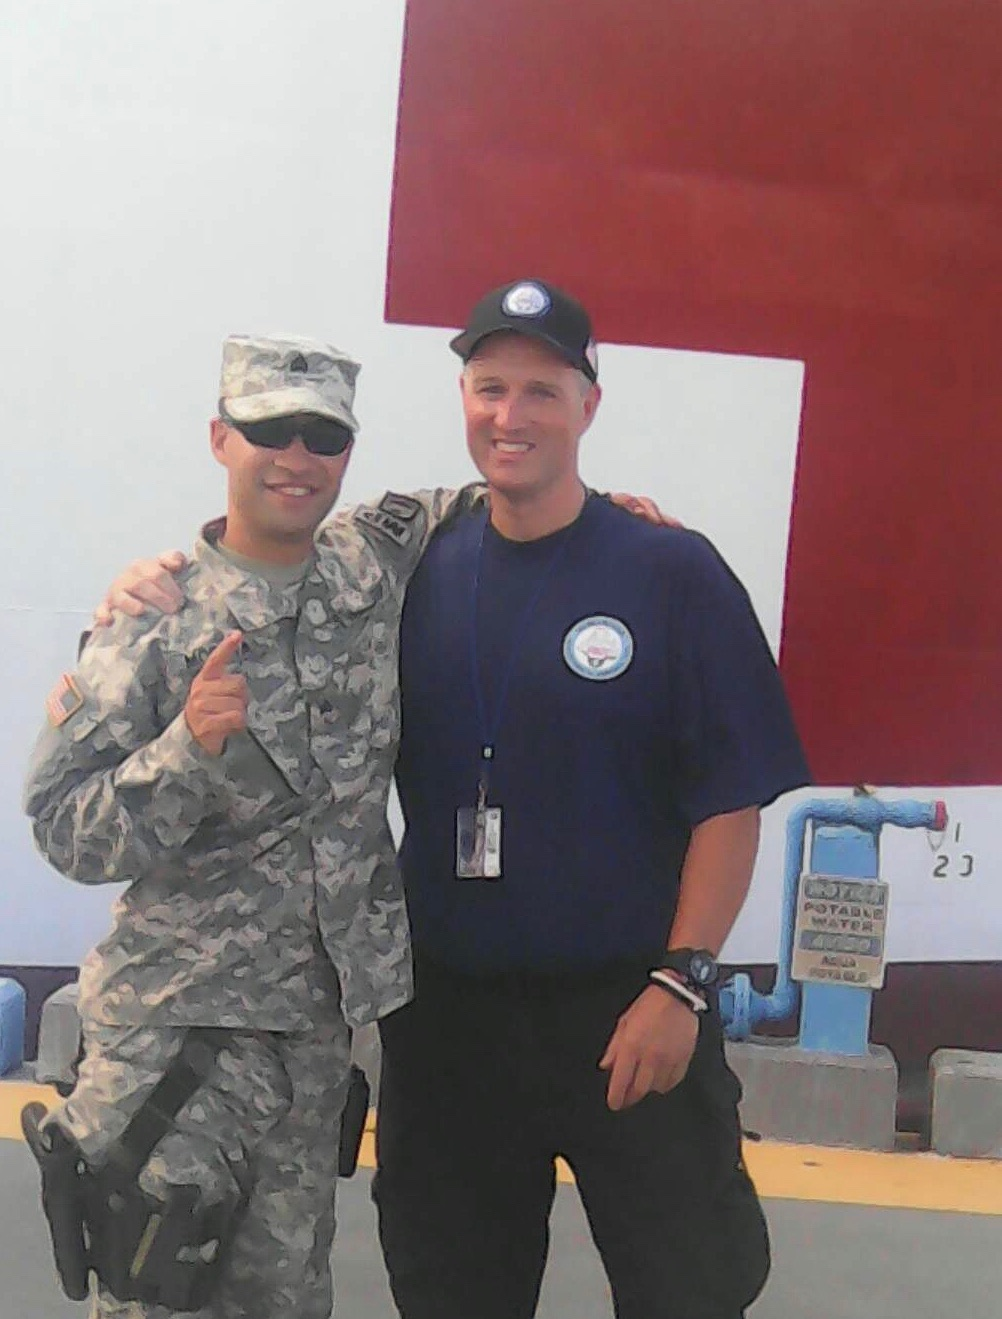 Pedro Moreta, Puerto Rico Reserve MP, who were tasked with providing security for the USNS Comfort, and Patrick Brown.